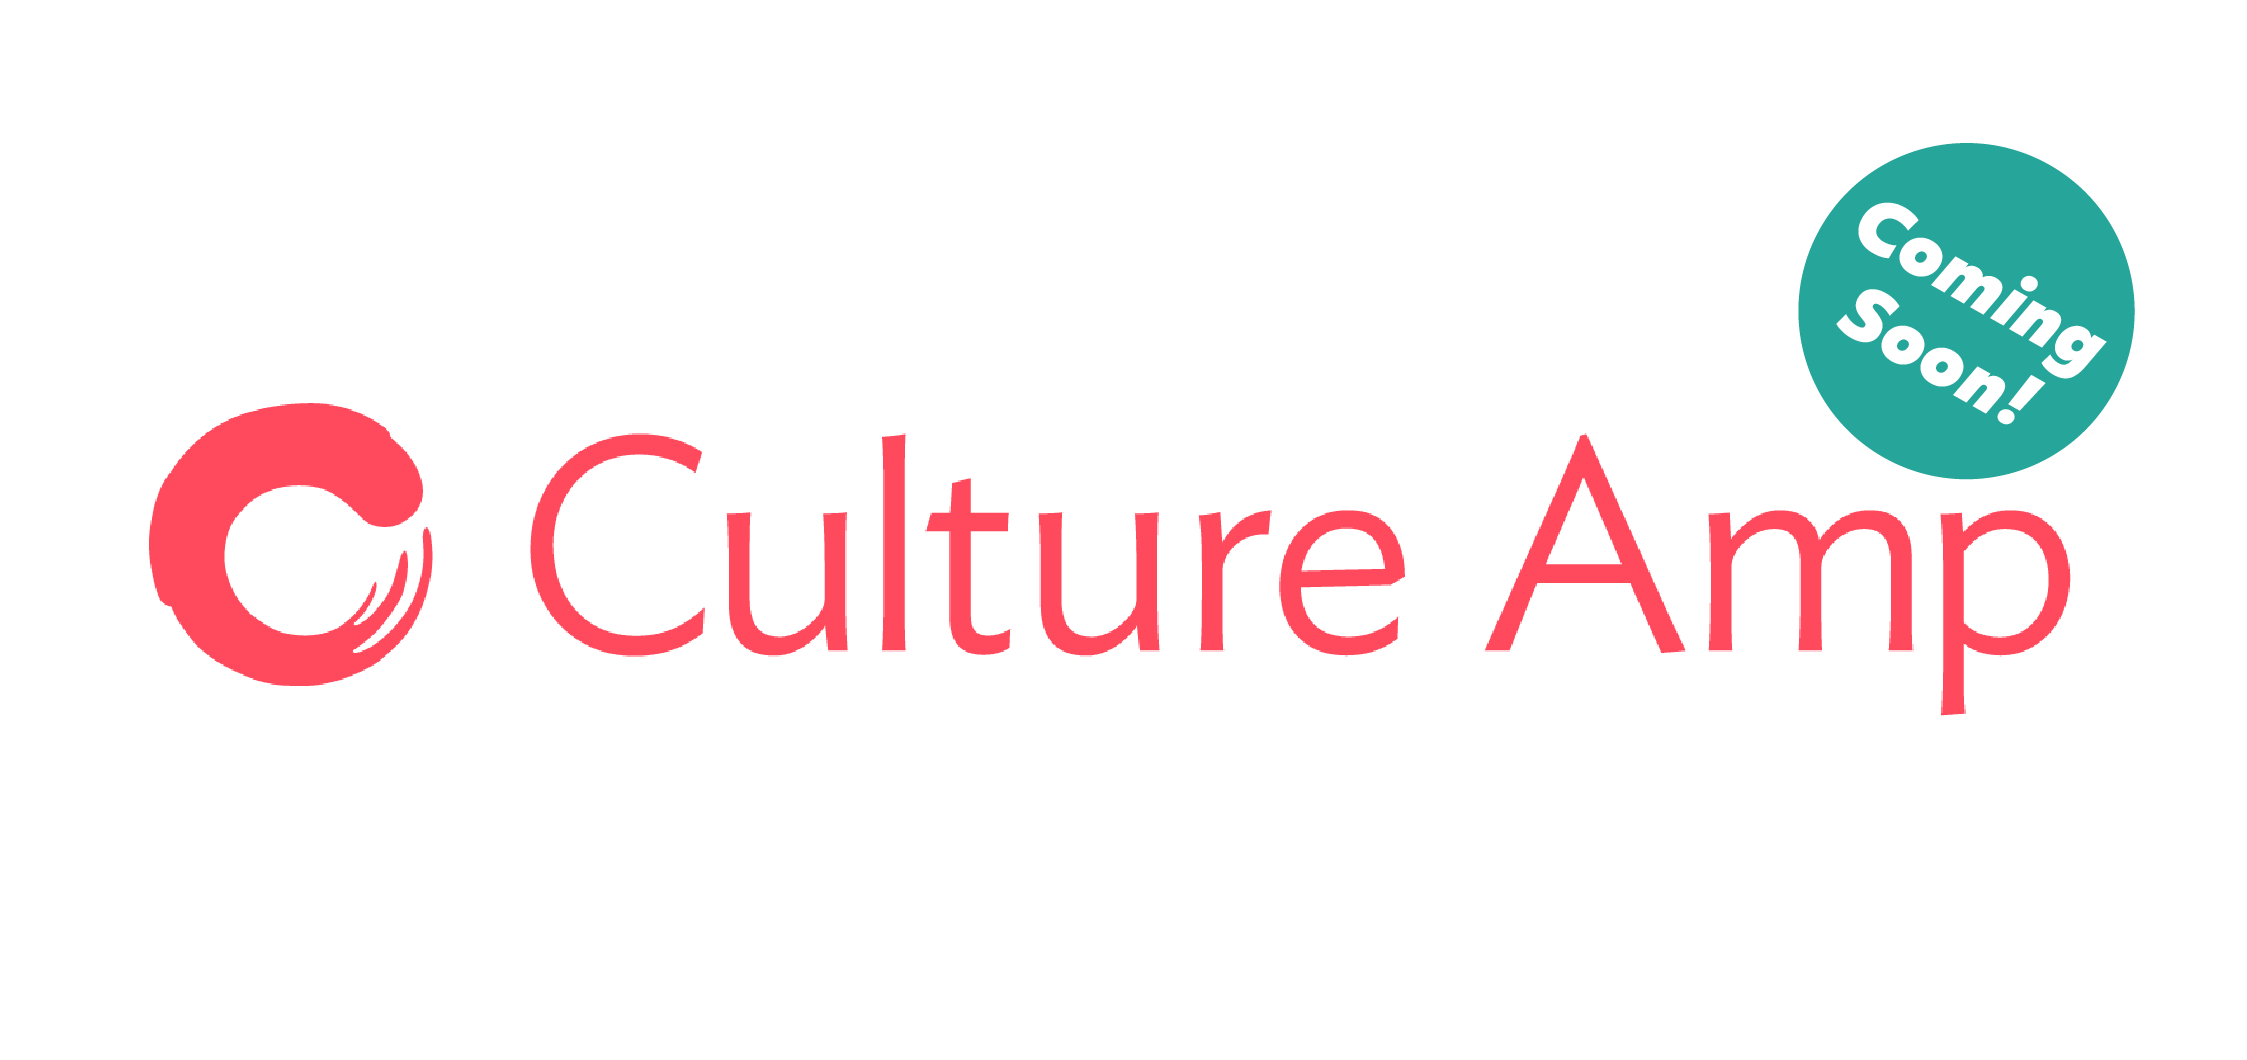 Culture Amp is an analytics software that makes collecting, understanding & acting on employee feedback easy.